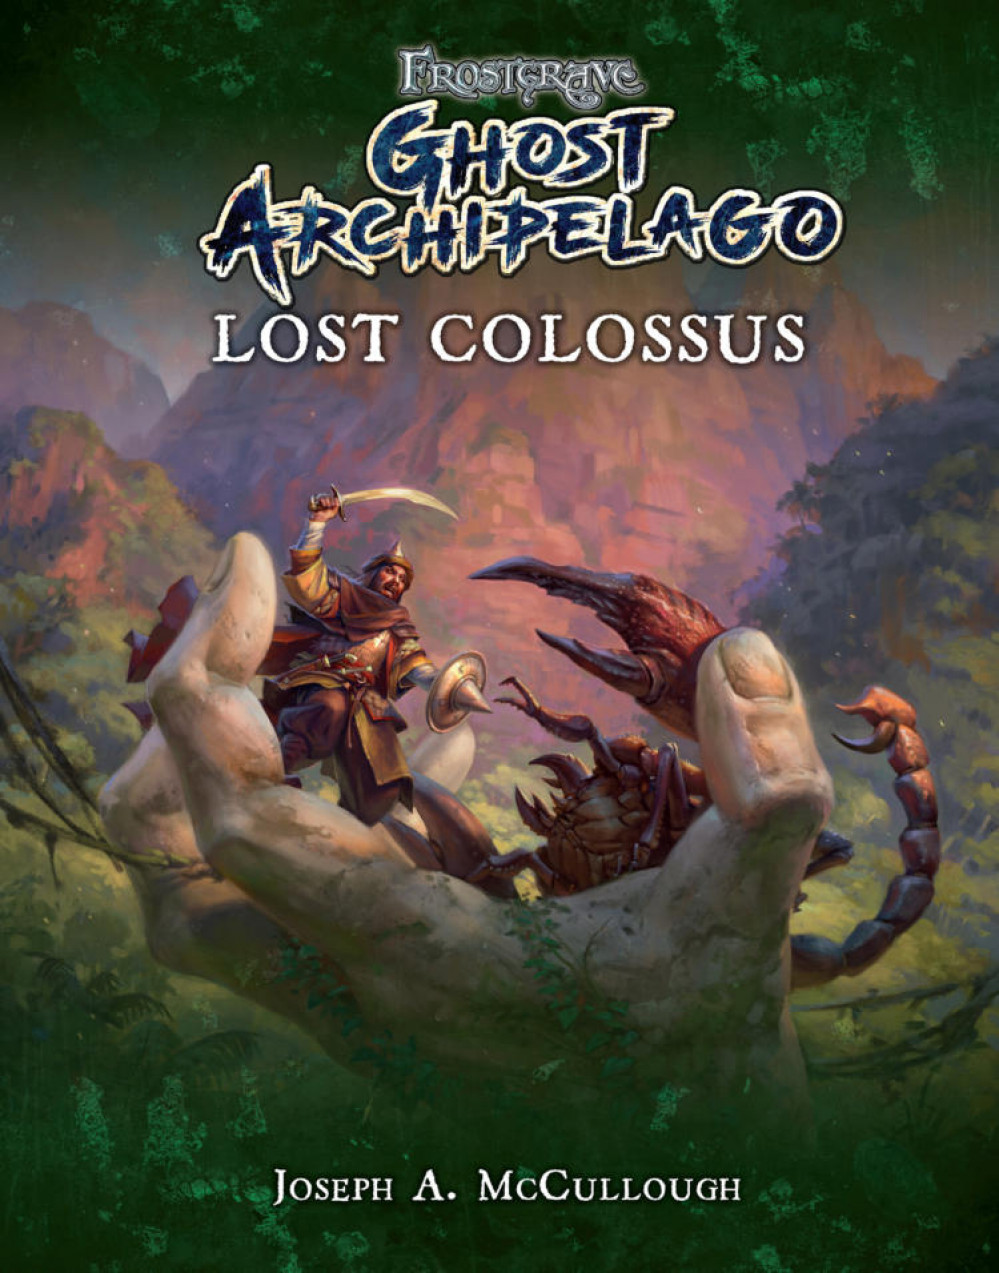 LOST COLOSSUS